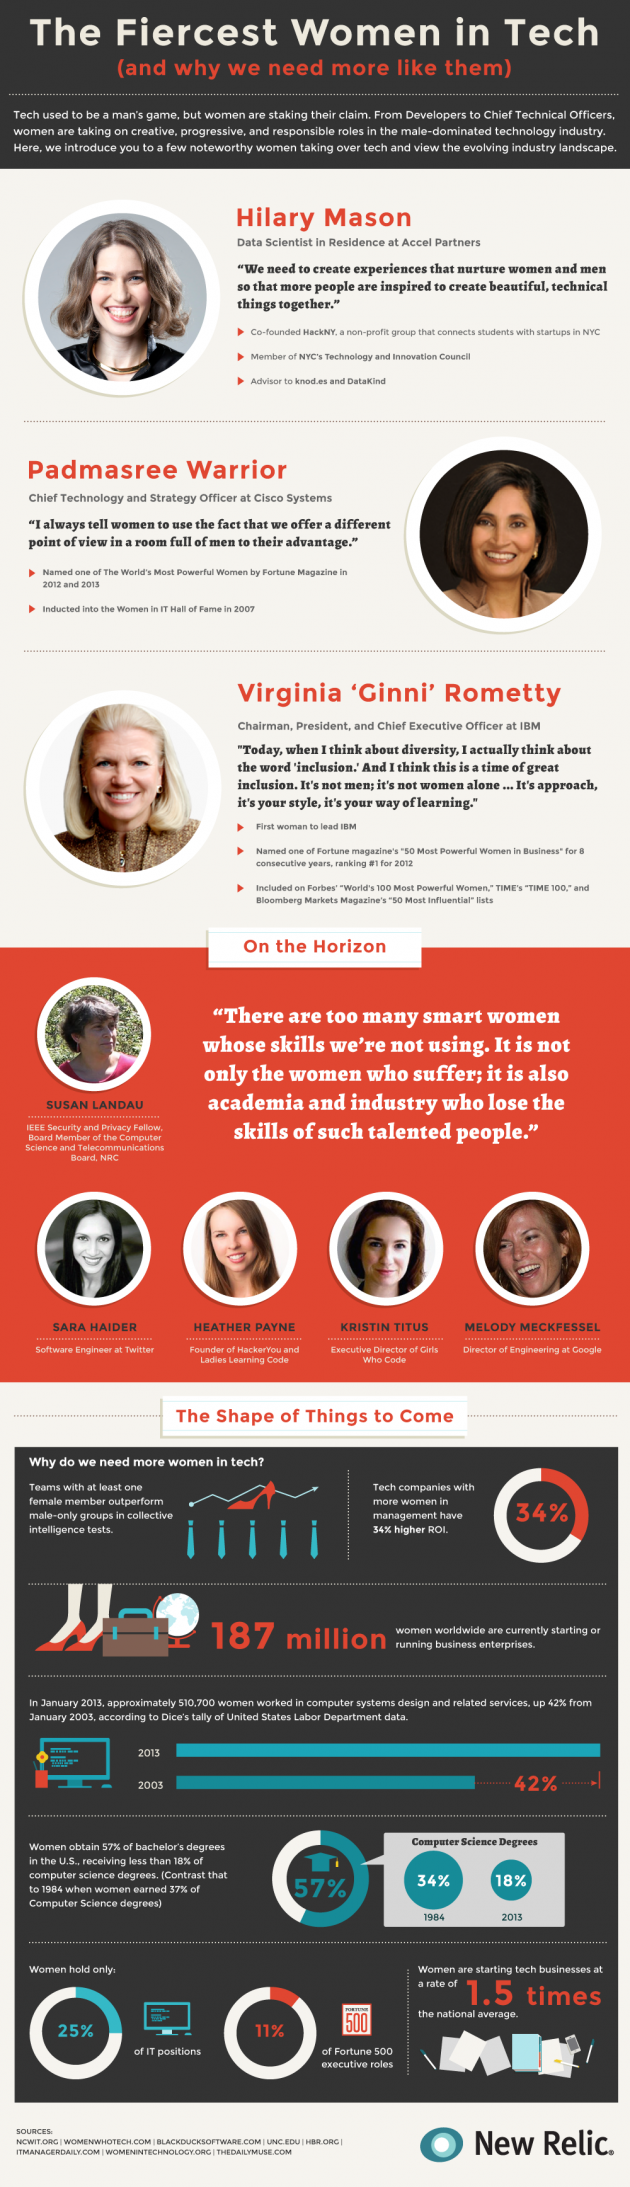 women-in-tech-new-relic